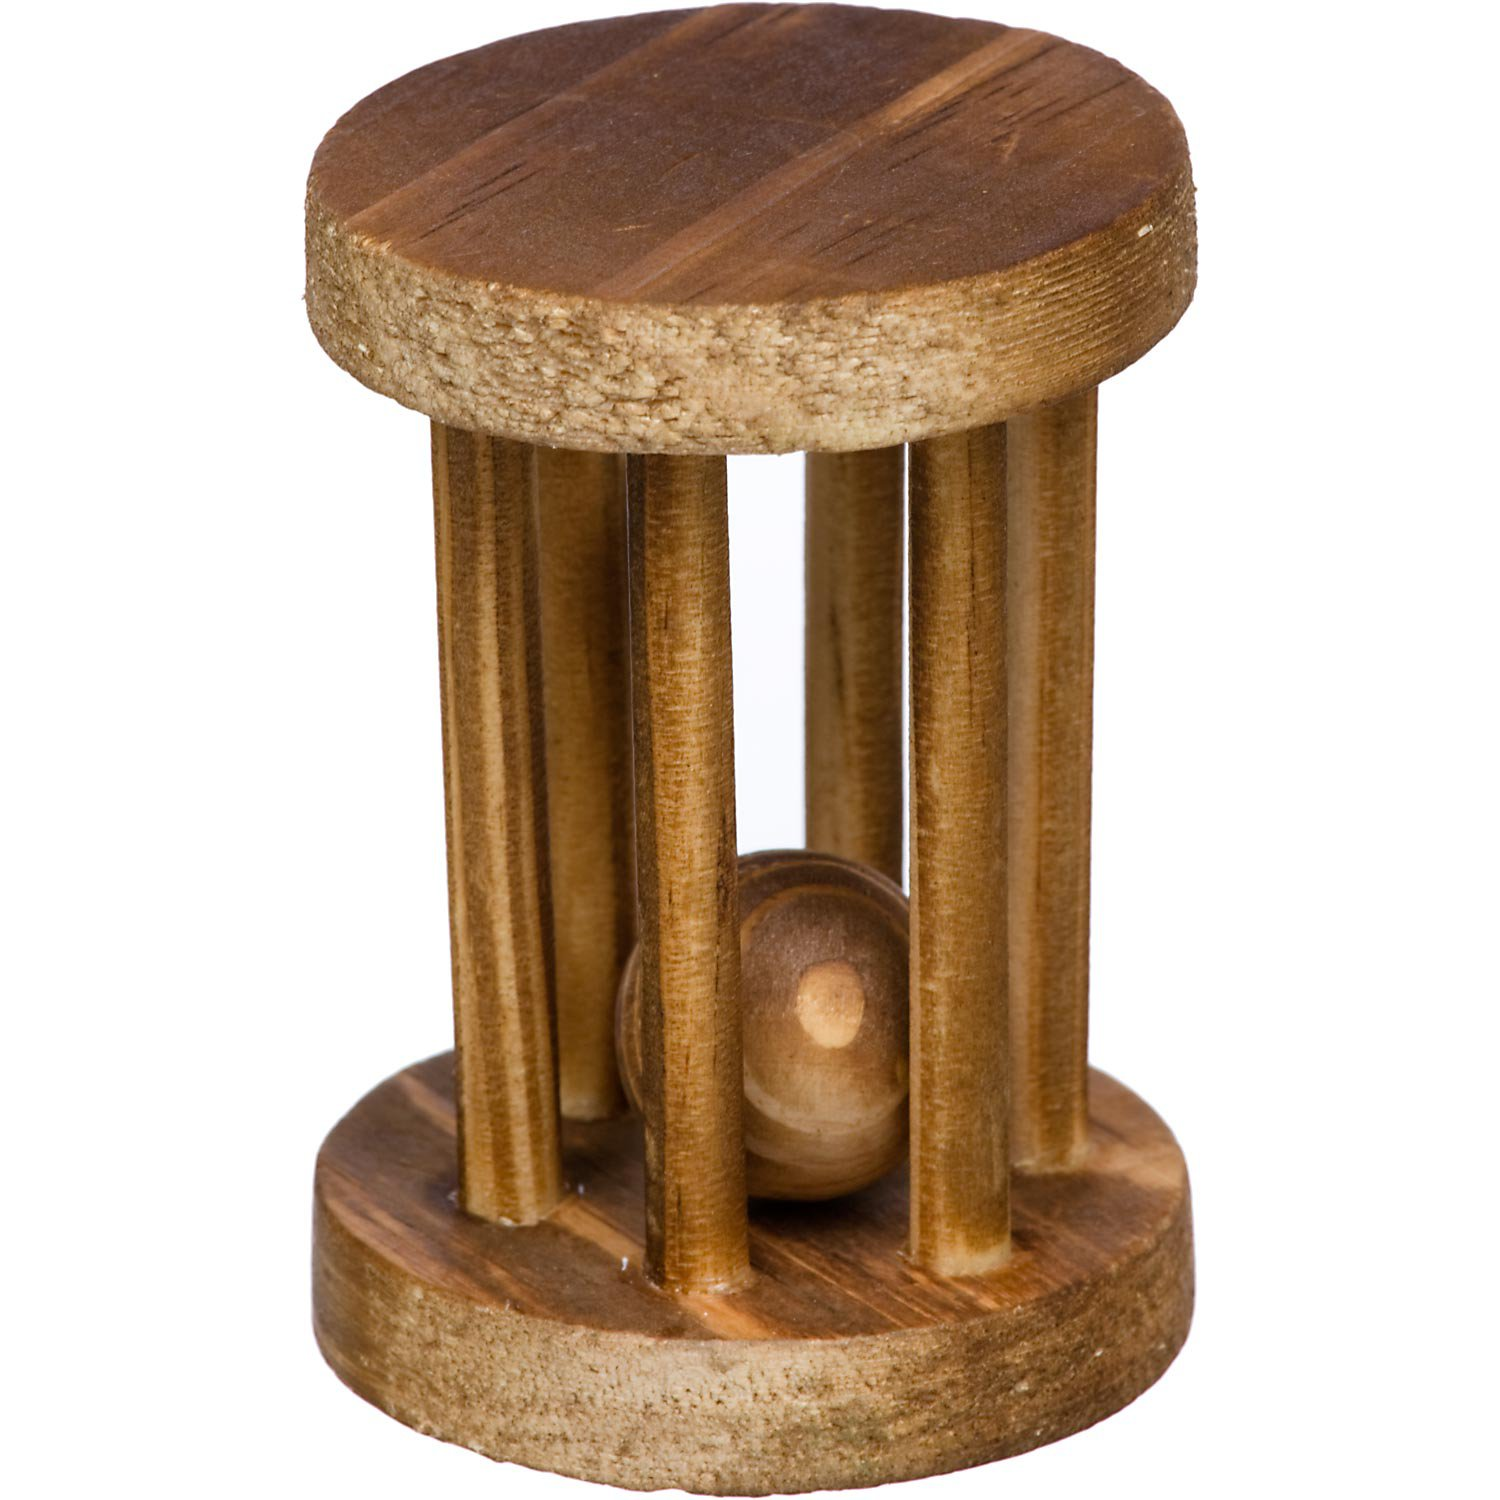 Planet Petco Wood Wheel with Ball Small Animal Chew Toy